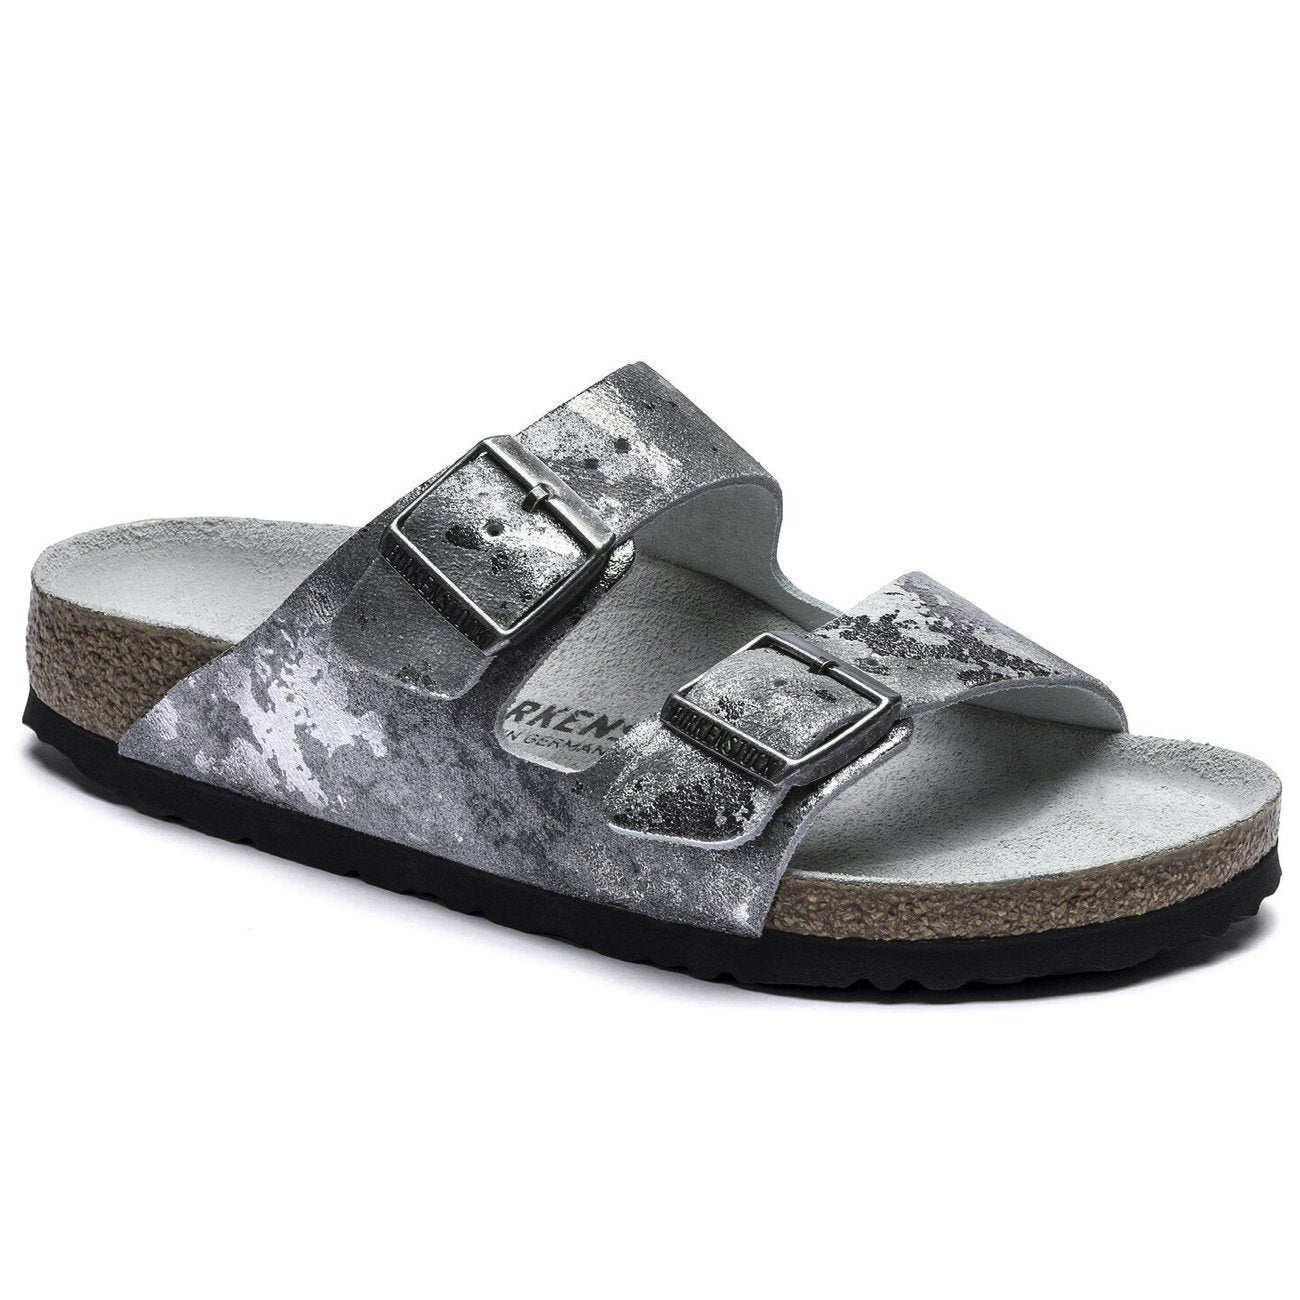 Birkenstock Seasonal, Arizona, Suede Leather, Regular Fit, Vintage Metallic Grey Silver Sandals Birkenstock Seasonal Vintage Metallic Grey Silver 36